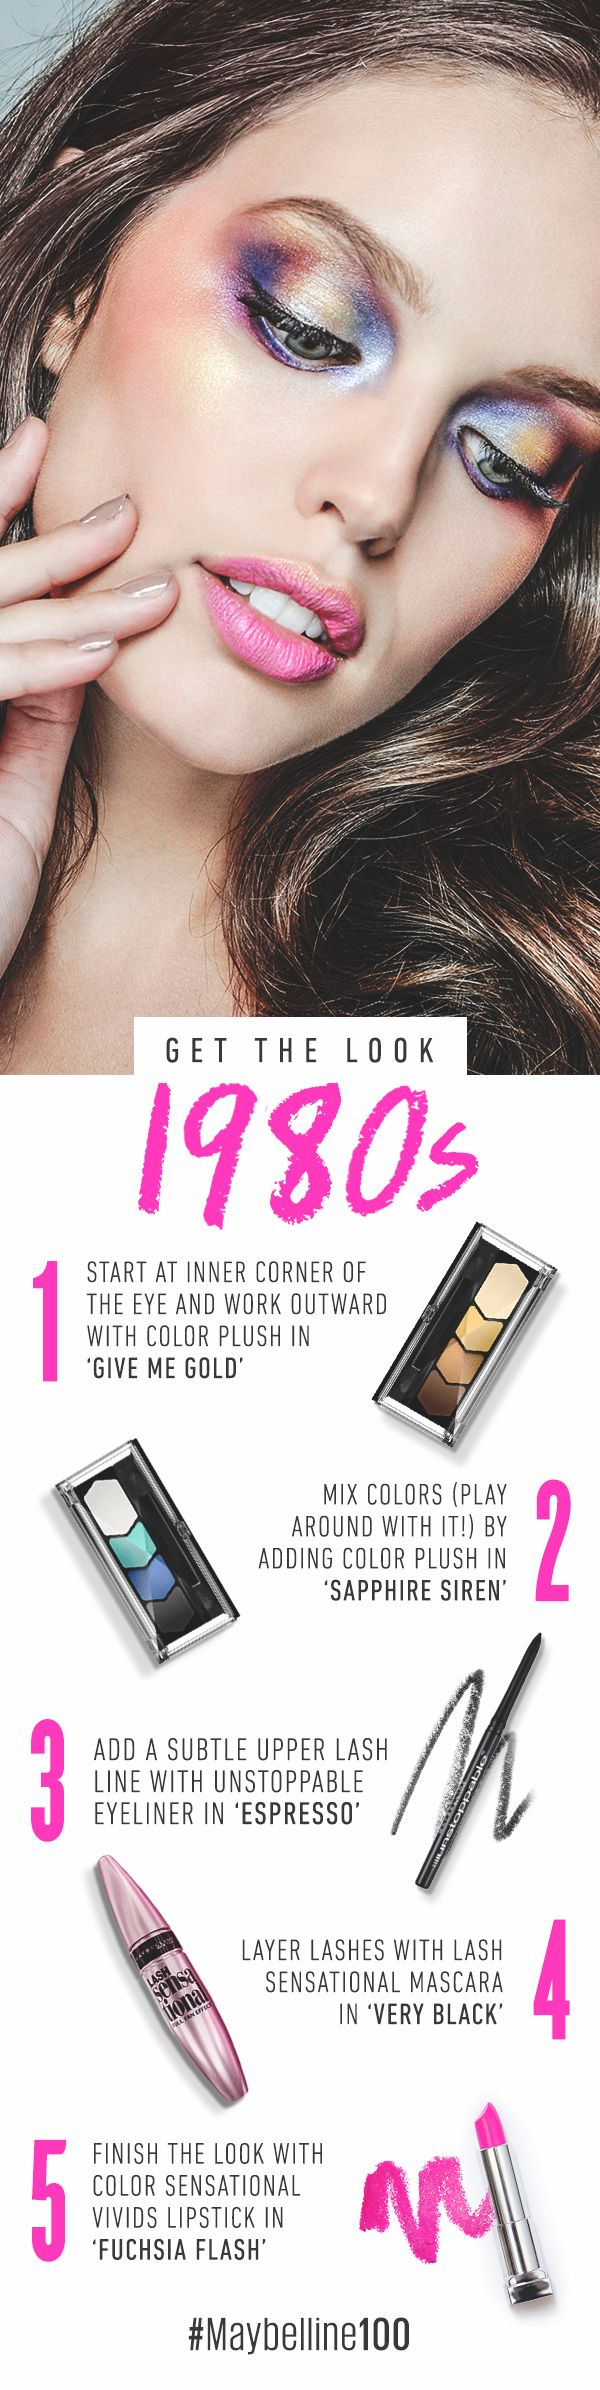 Make up your own rules—you can rock a rainbow of colors in one bold 80s makeup look. The brighter, the better! Rock it using Color Plush eyeshadow trios, Unstoppable eyeliner, Lash Sensational mascara and Color Sensational Vivids lipstick.